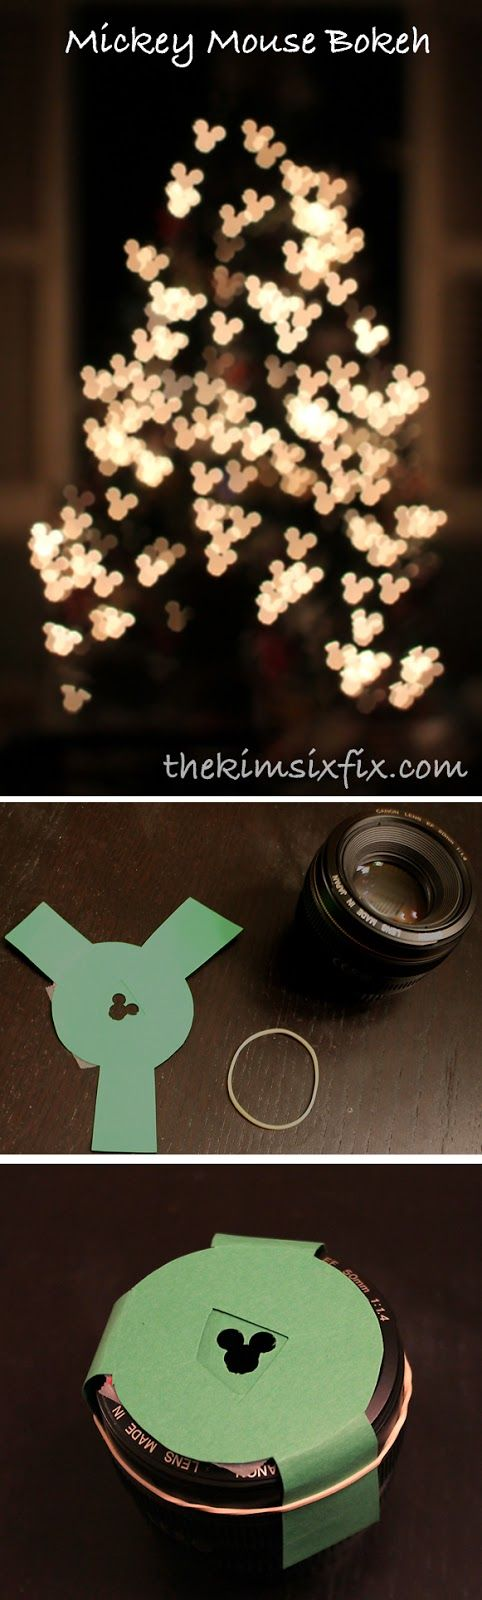 Mickey Bokeh for Night Photography at Disney. Soooo cute!!! Hope I have my camera by the time we go to Disneyland.